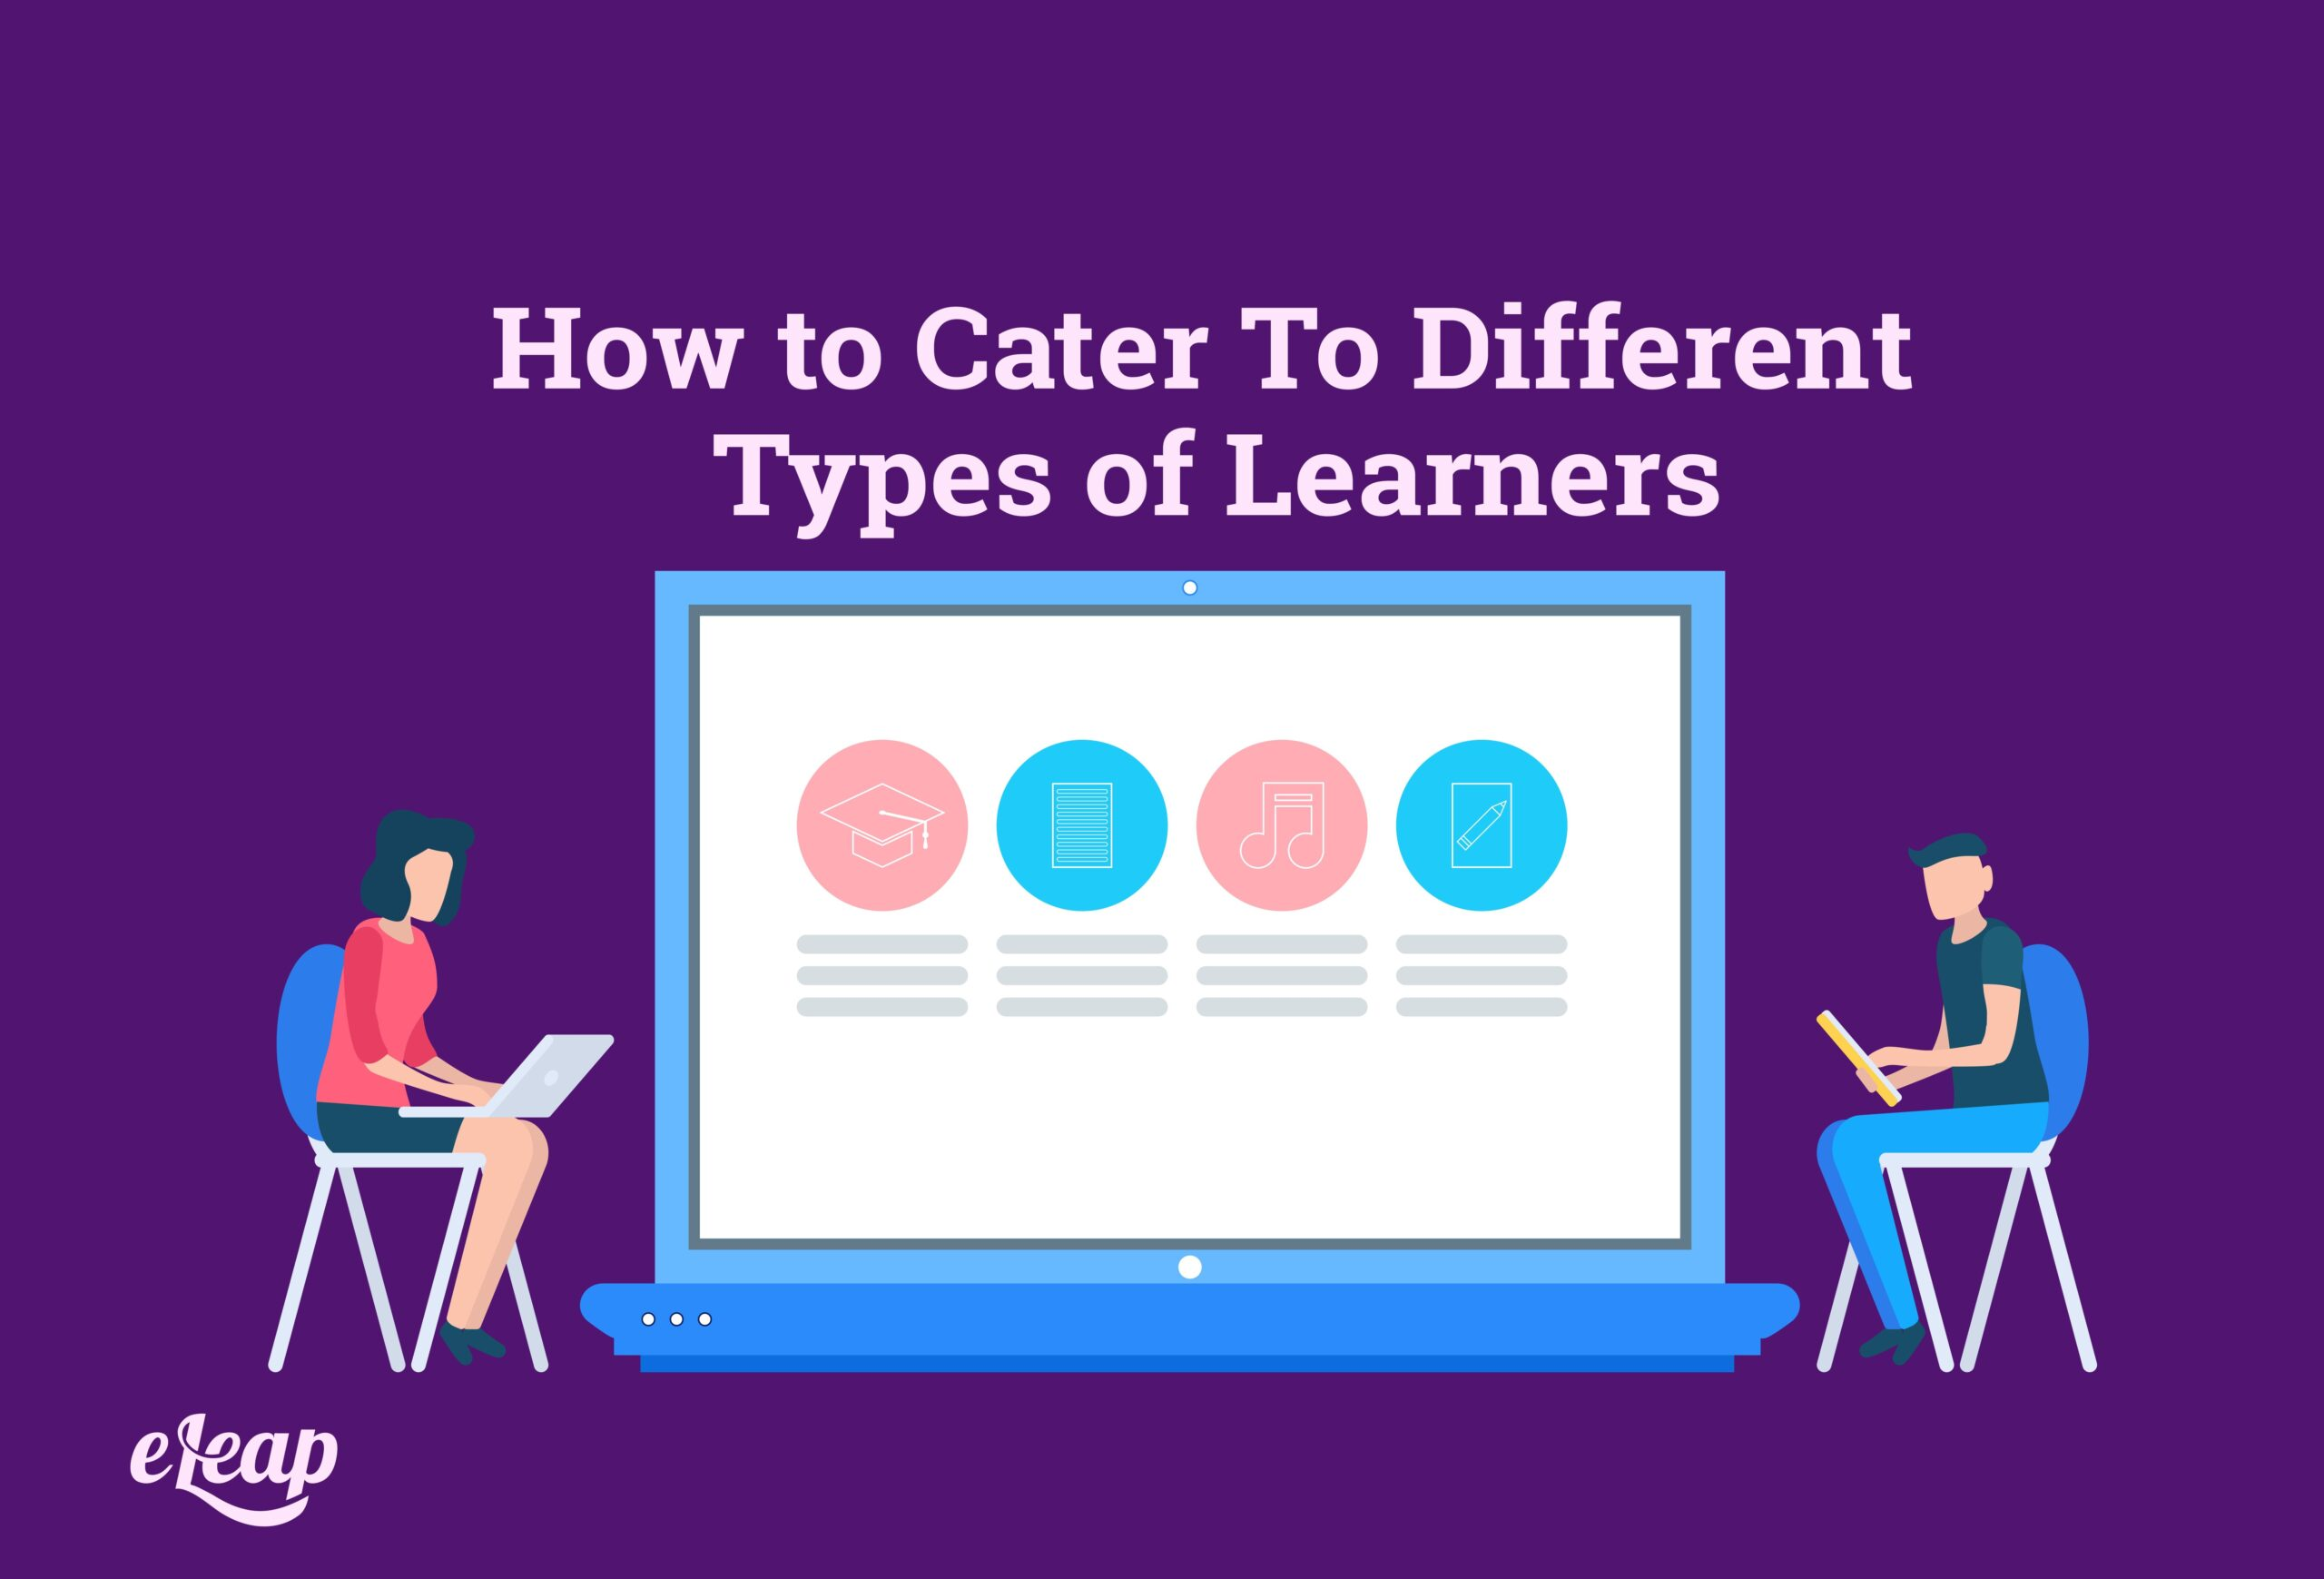 How to Cater To Different Types of Learners